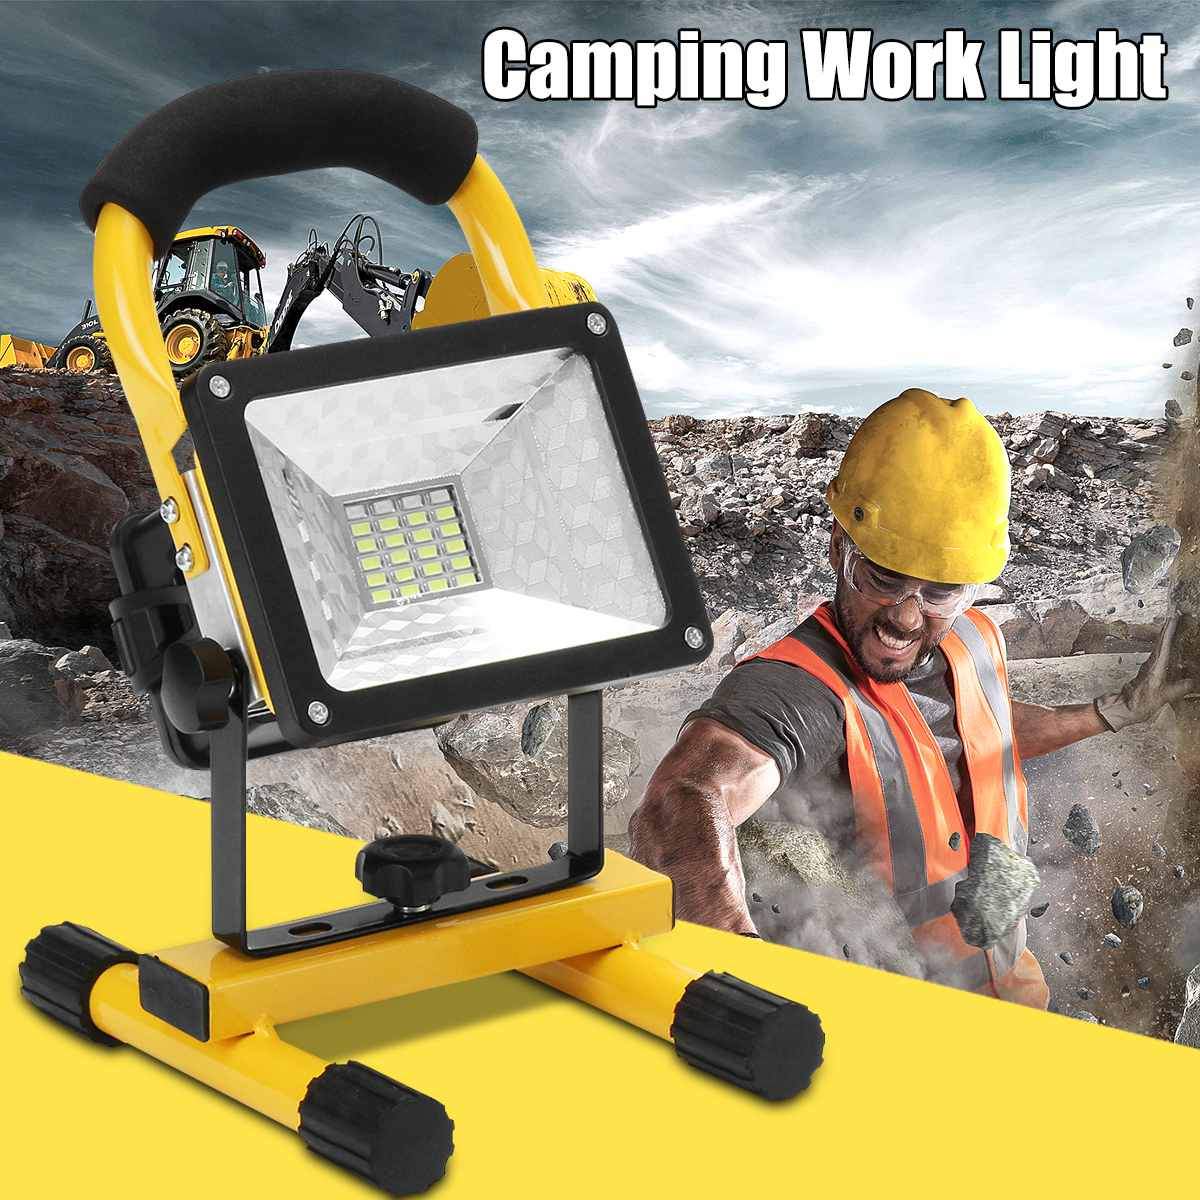 2000LM COB LED Portable Spotlight Searchlight Camping Light Rechargeable Handheld Work Light Power By 18650 Portable Lantern2000LM COB LED Portable Spotlight Searchlight Camping Light Rechargeable Handheld Work Light Power By 18650 Portable Lantern